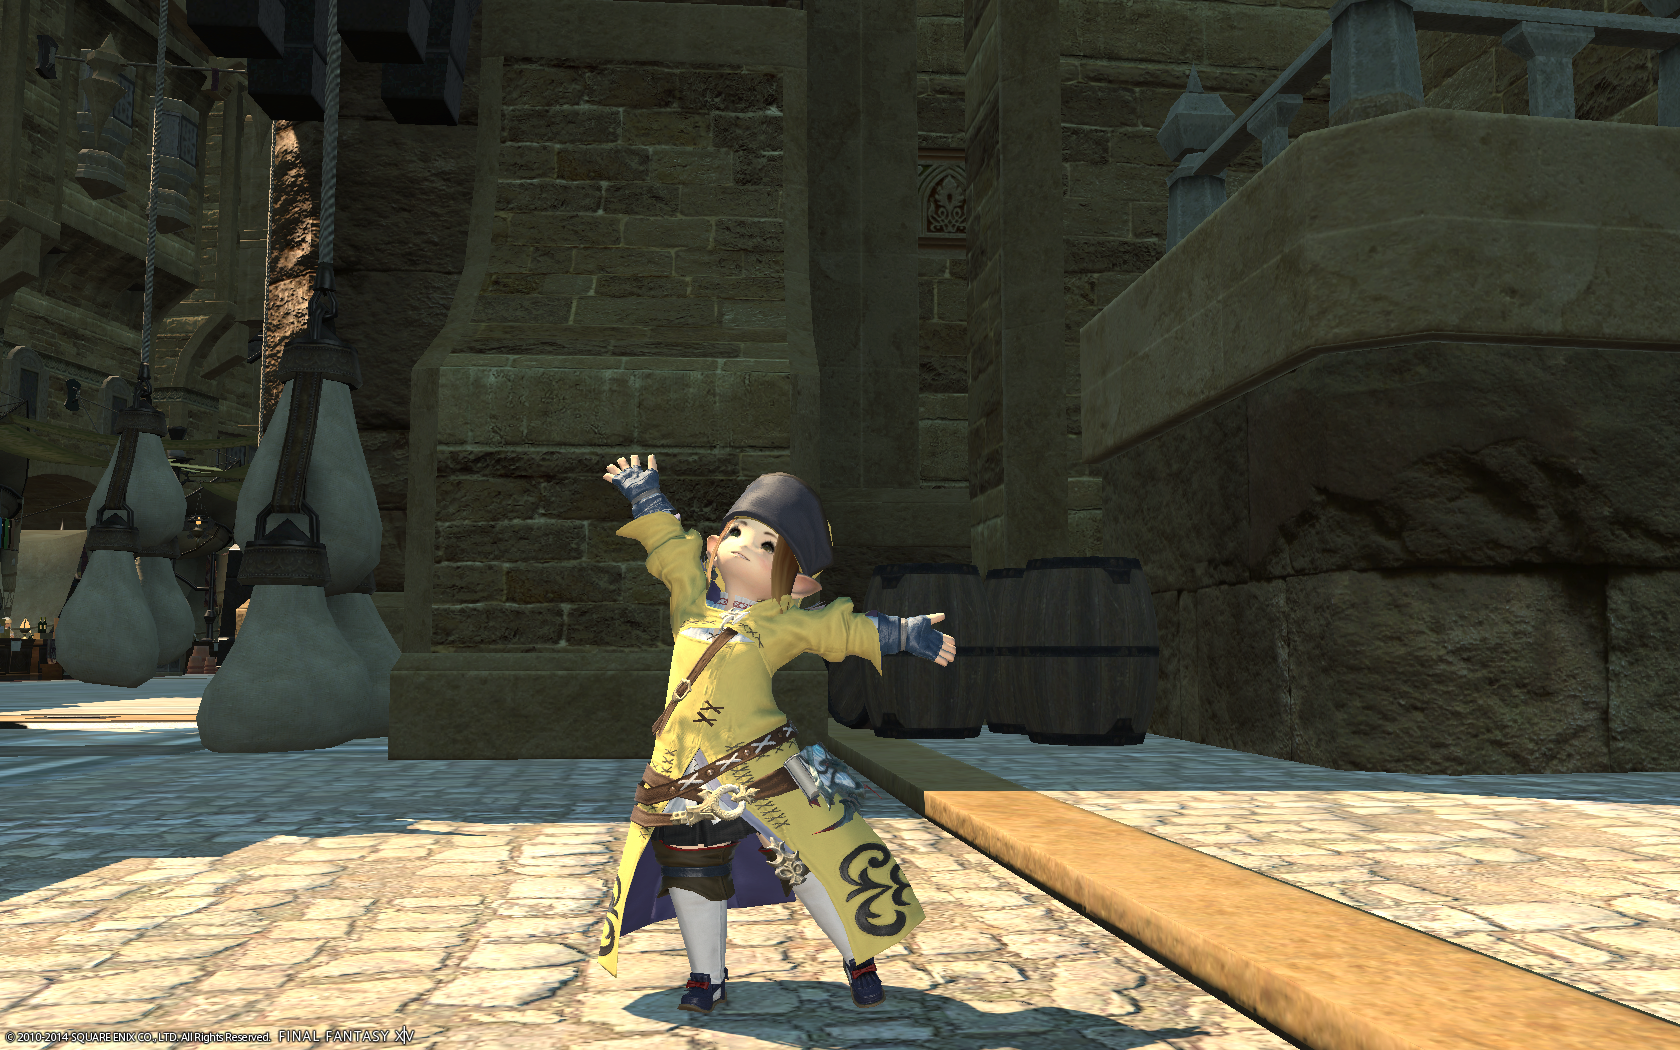 seravi edalborez ffxiv know ears really this used shitpost with just like deal forum over month entire grind inb4 lala thread picture cute lalafell coming that fate posting soon